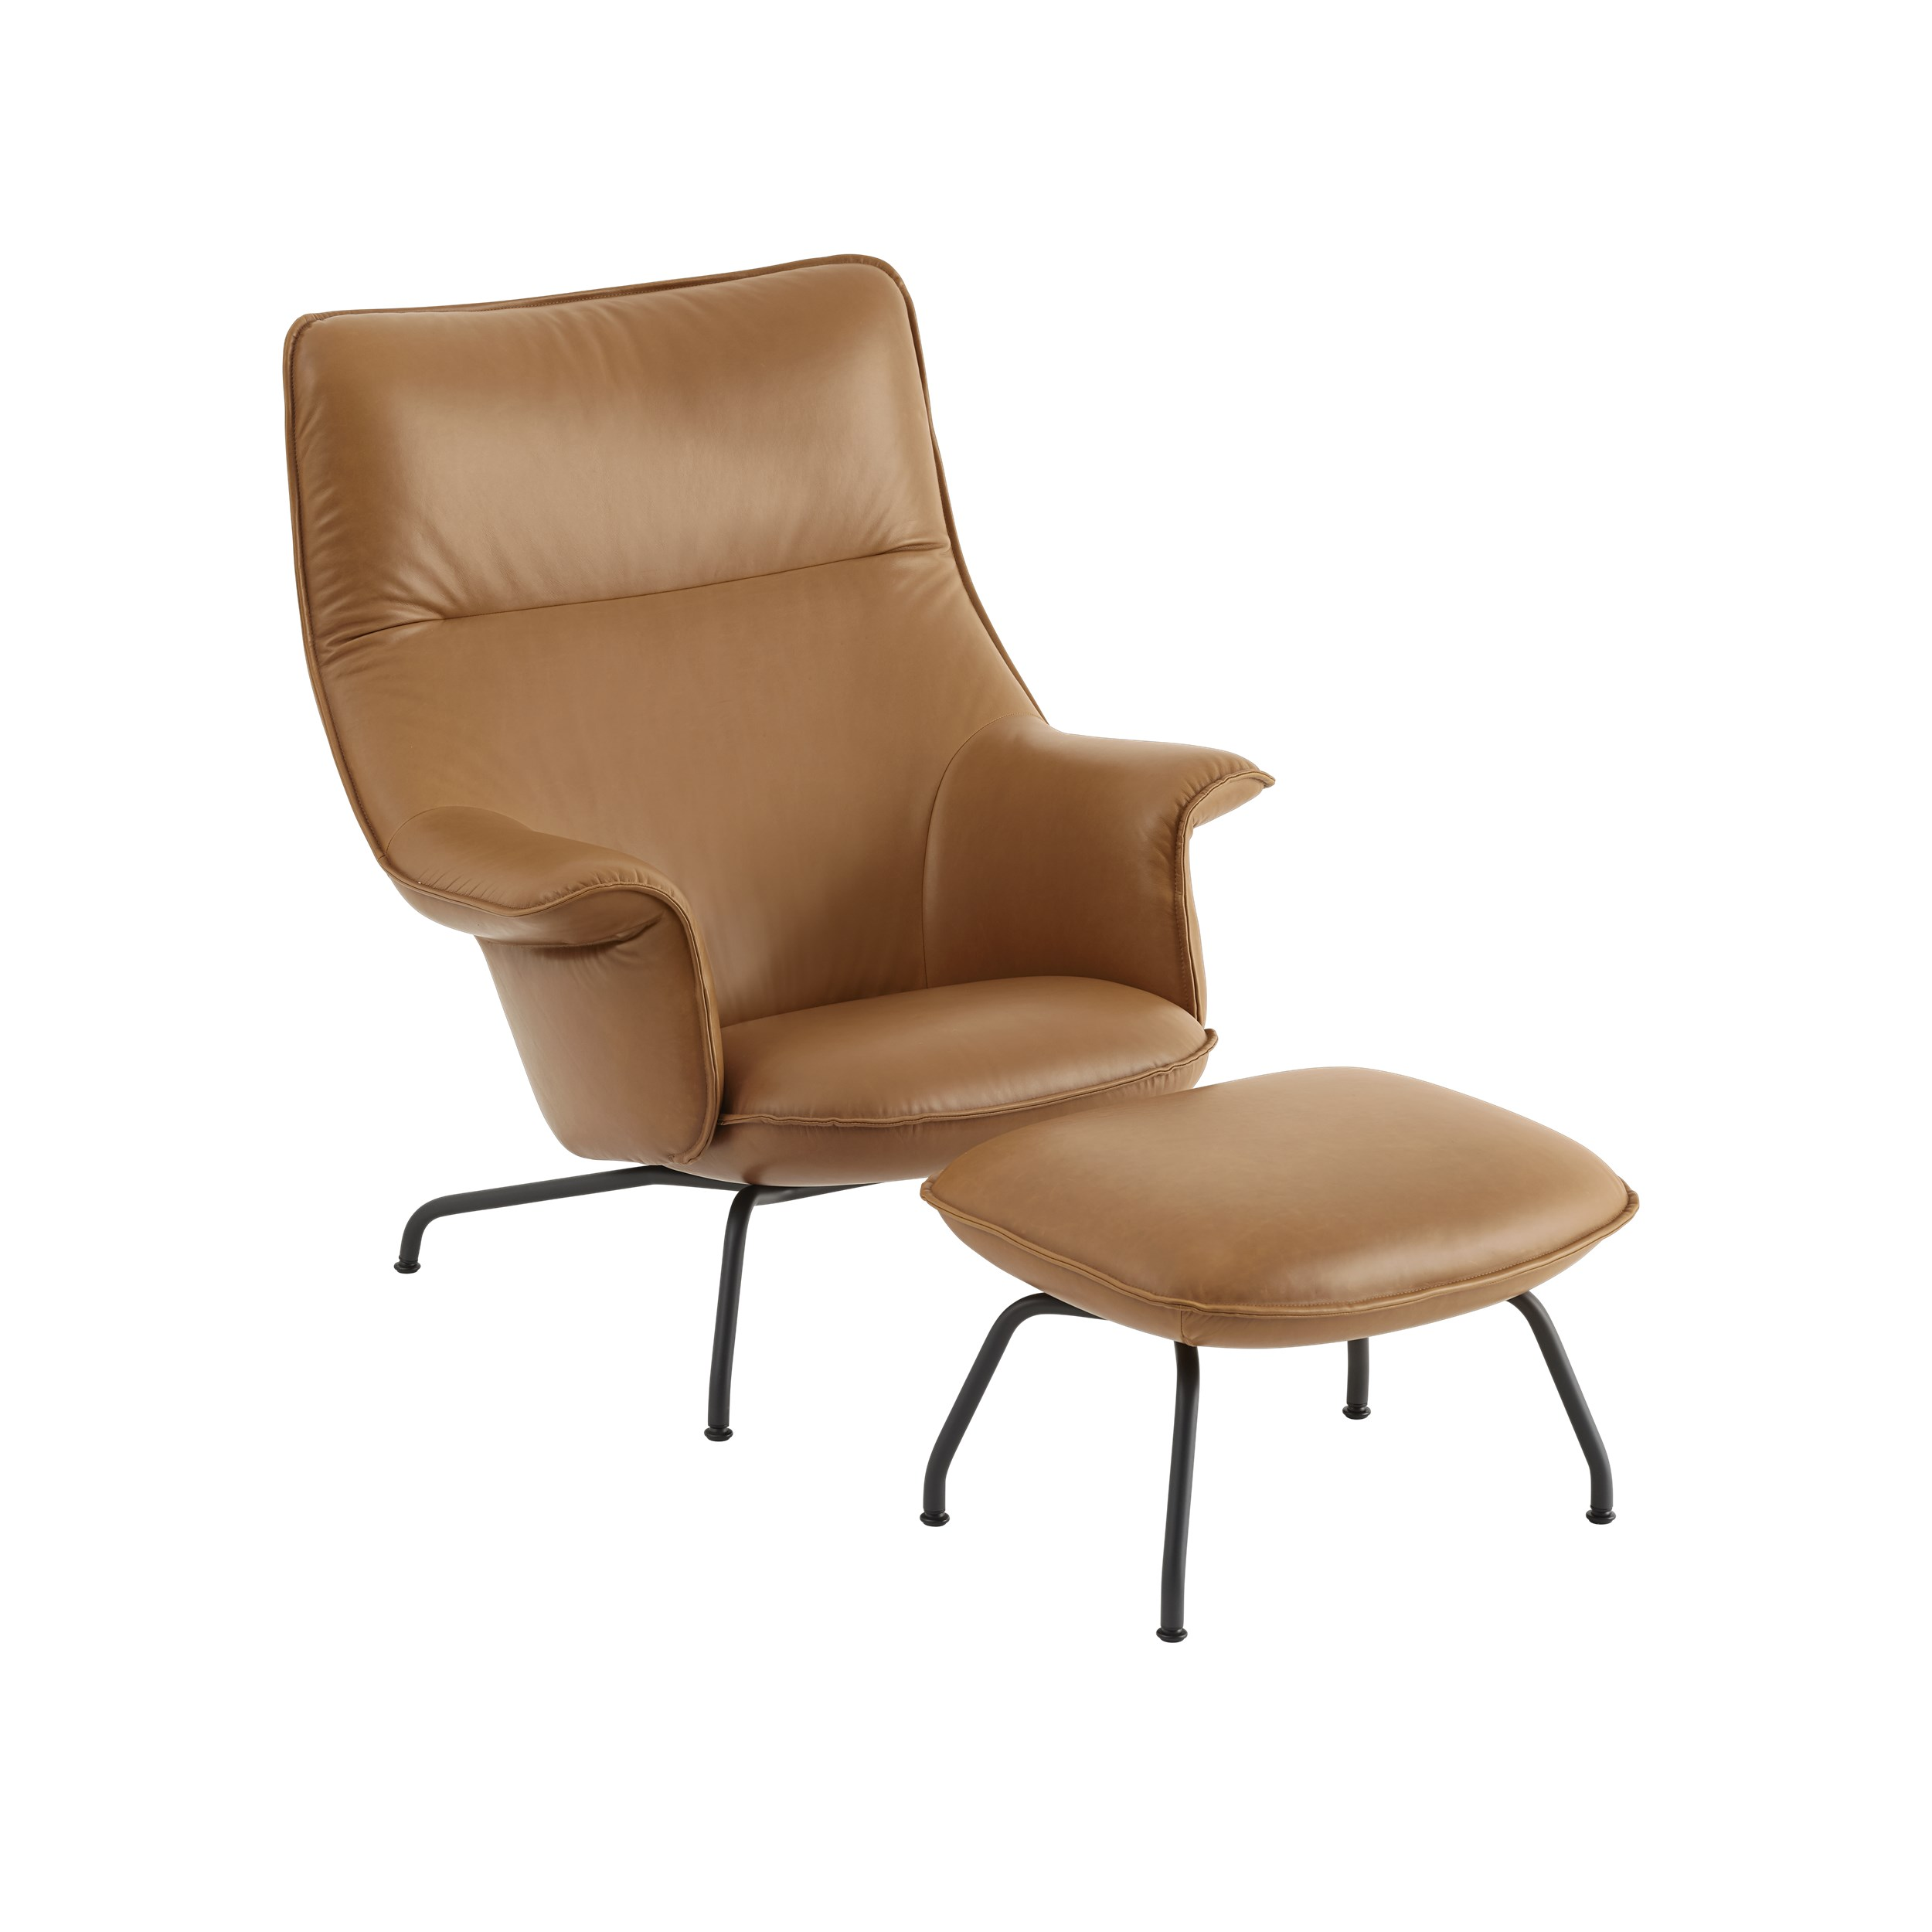 DOZE Lounge Chair and footstool Leather